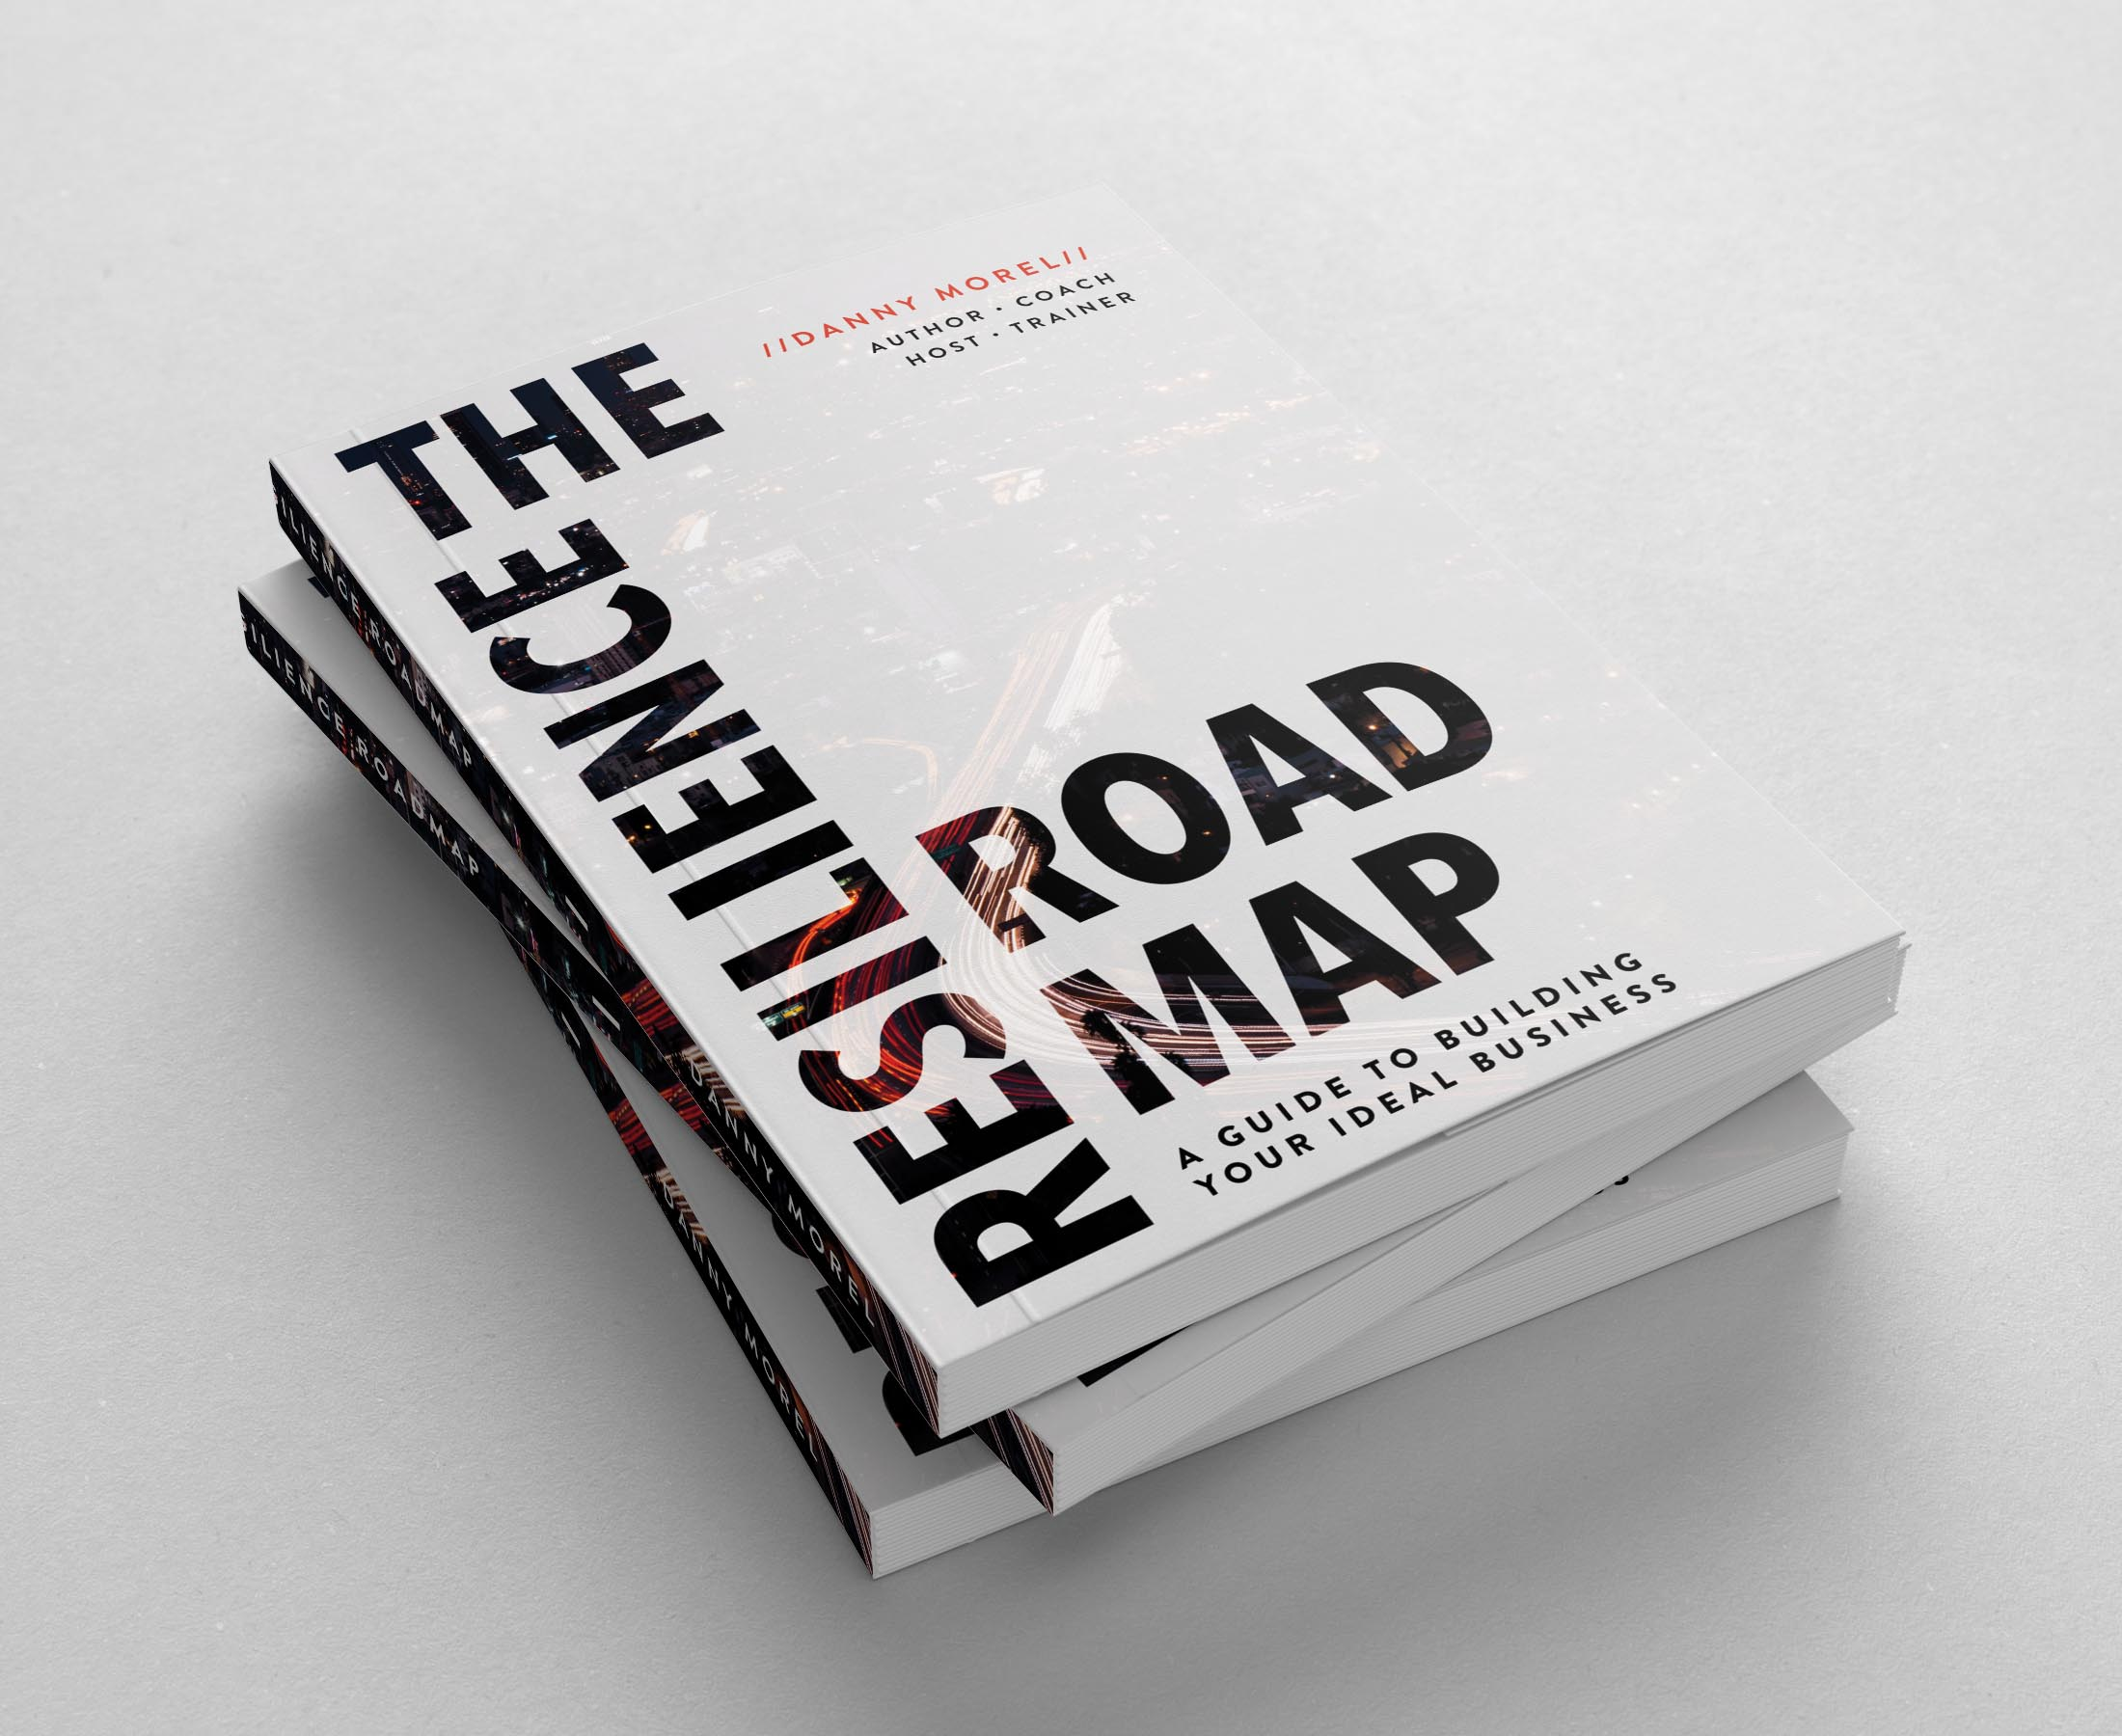 THE RESILIENCE ROAD MAP BOOK